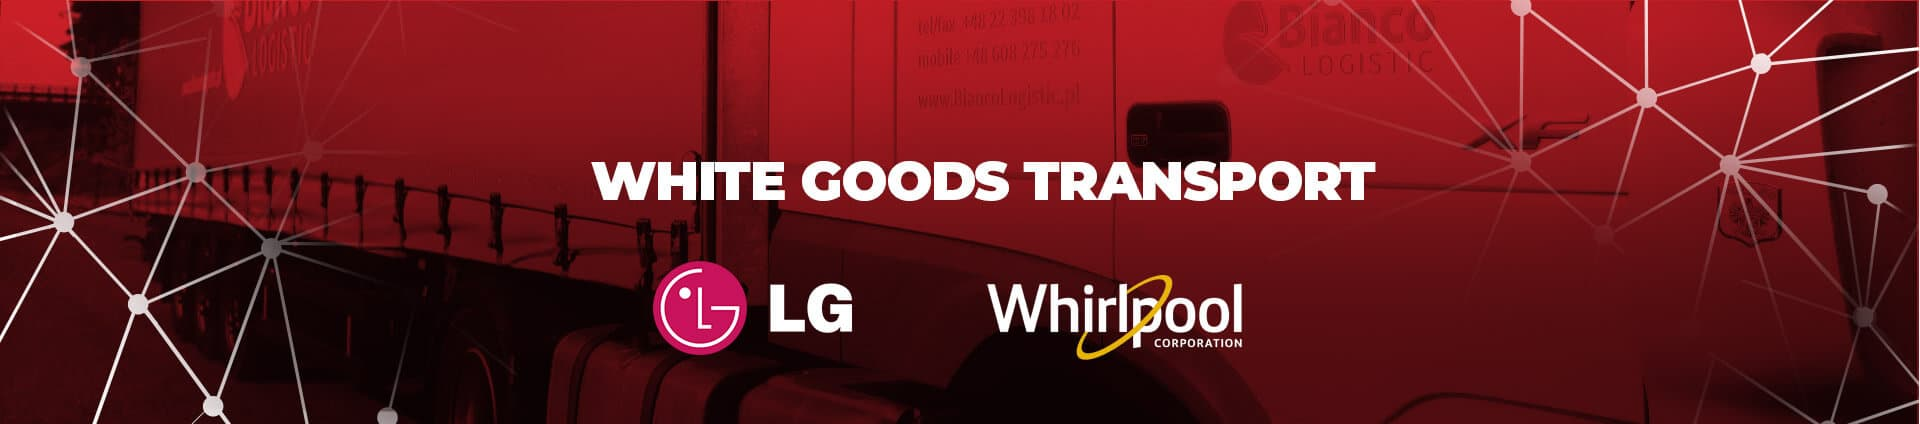 Bianco Logistic White Good Transport